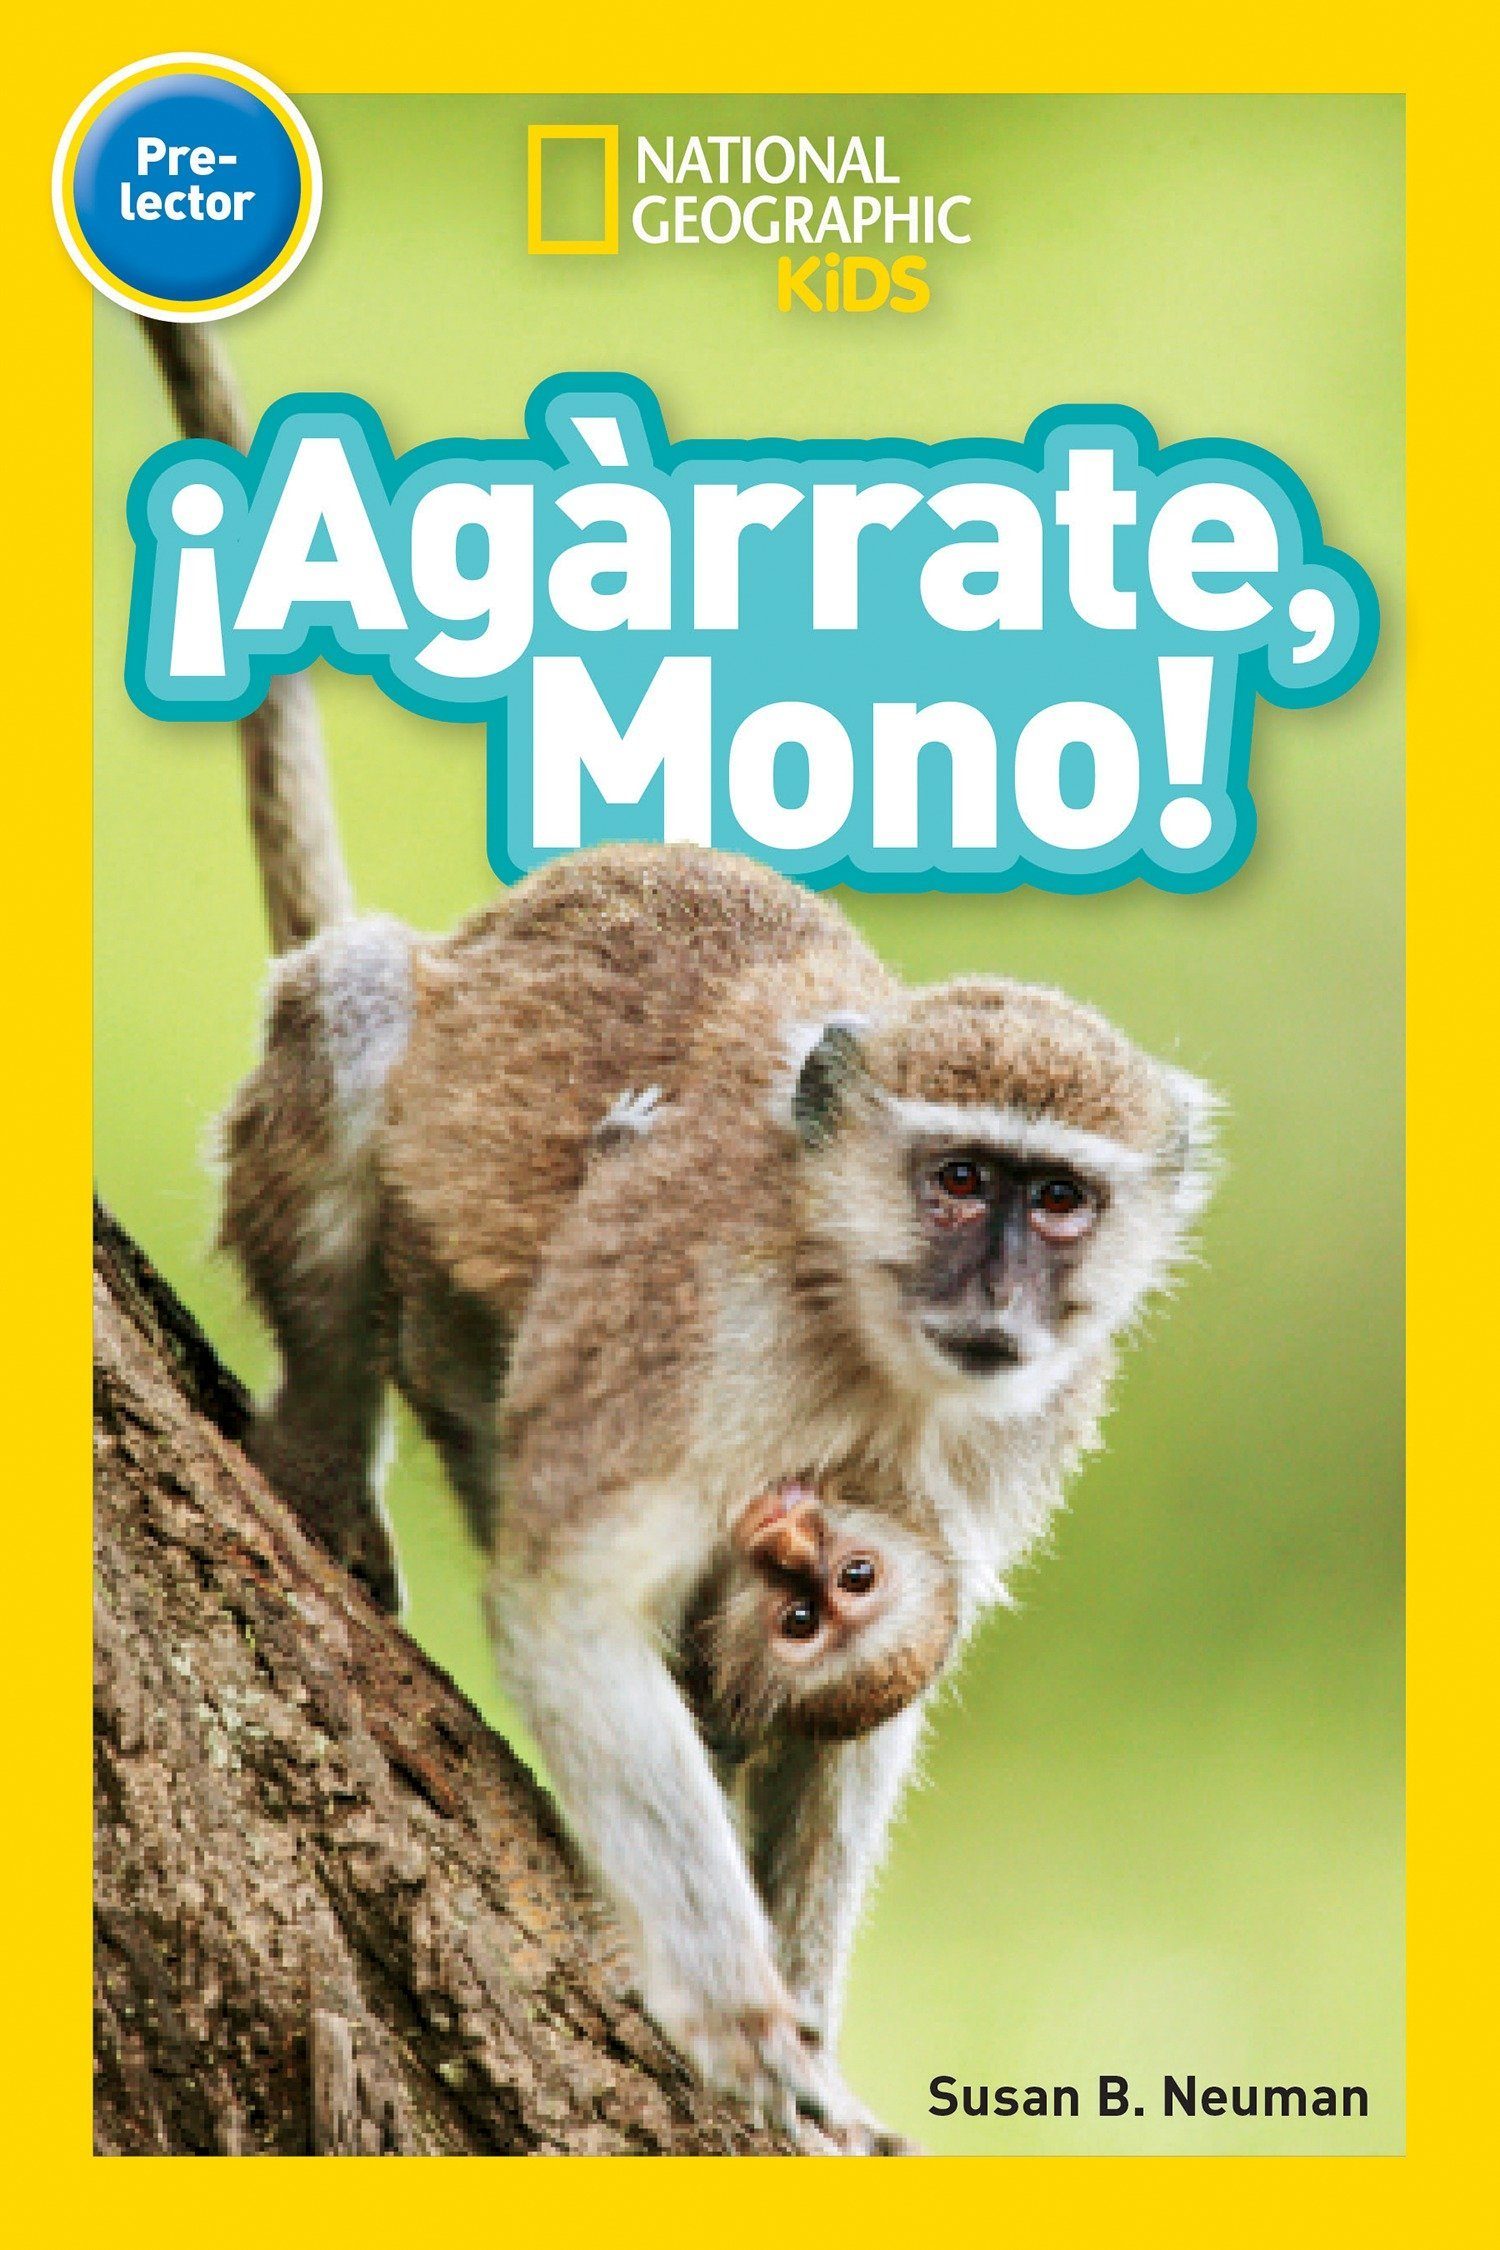 National Geographic Readers: ¡Agárrate, Mono! (Pre-reader) (Spanish Edition)